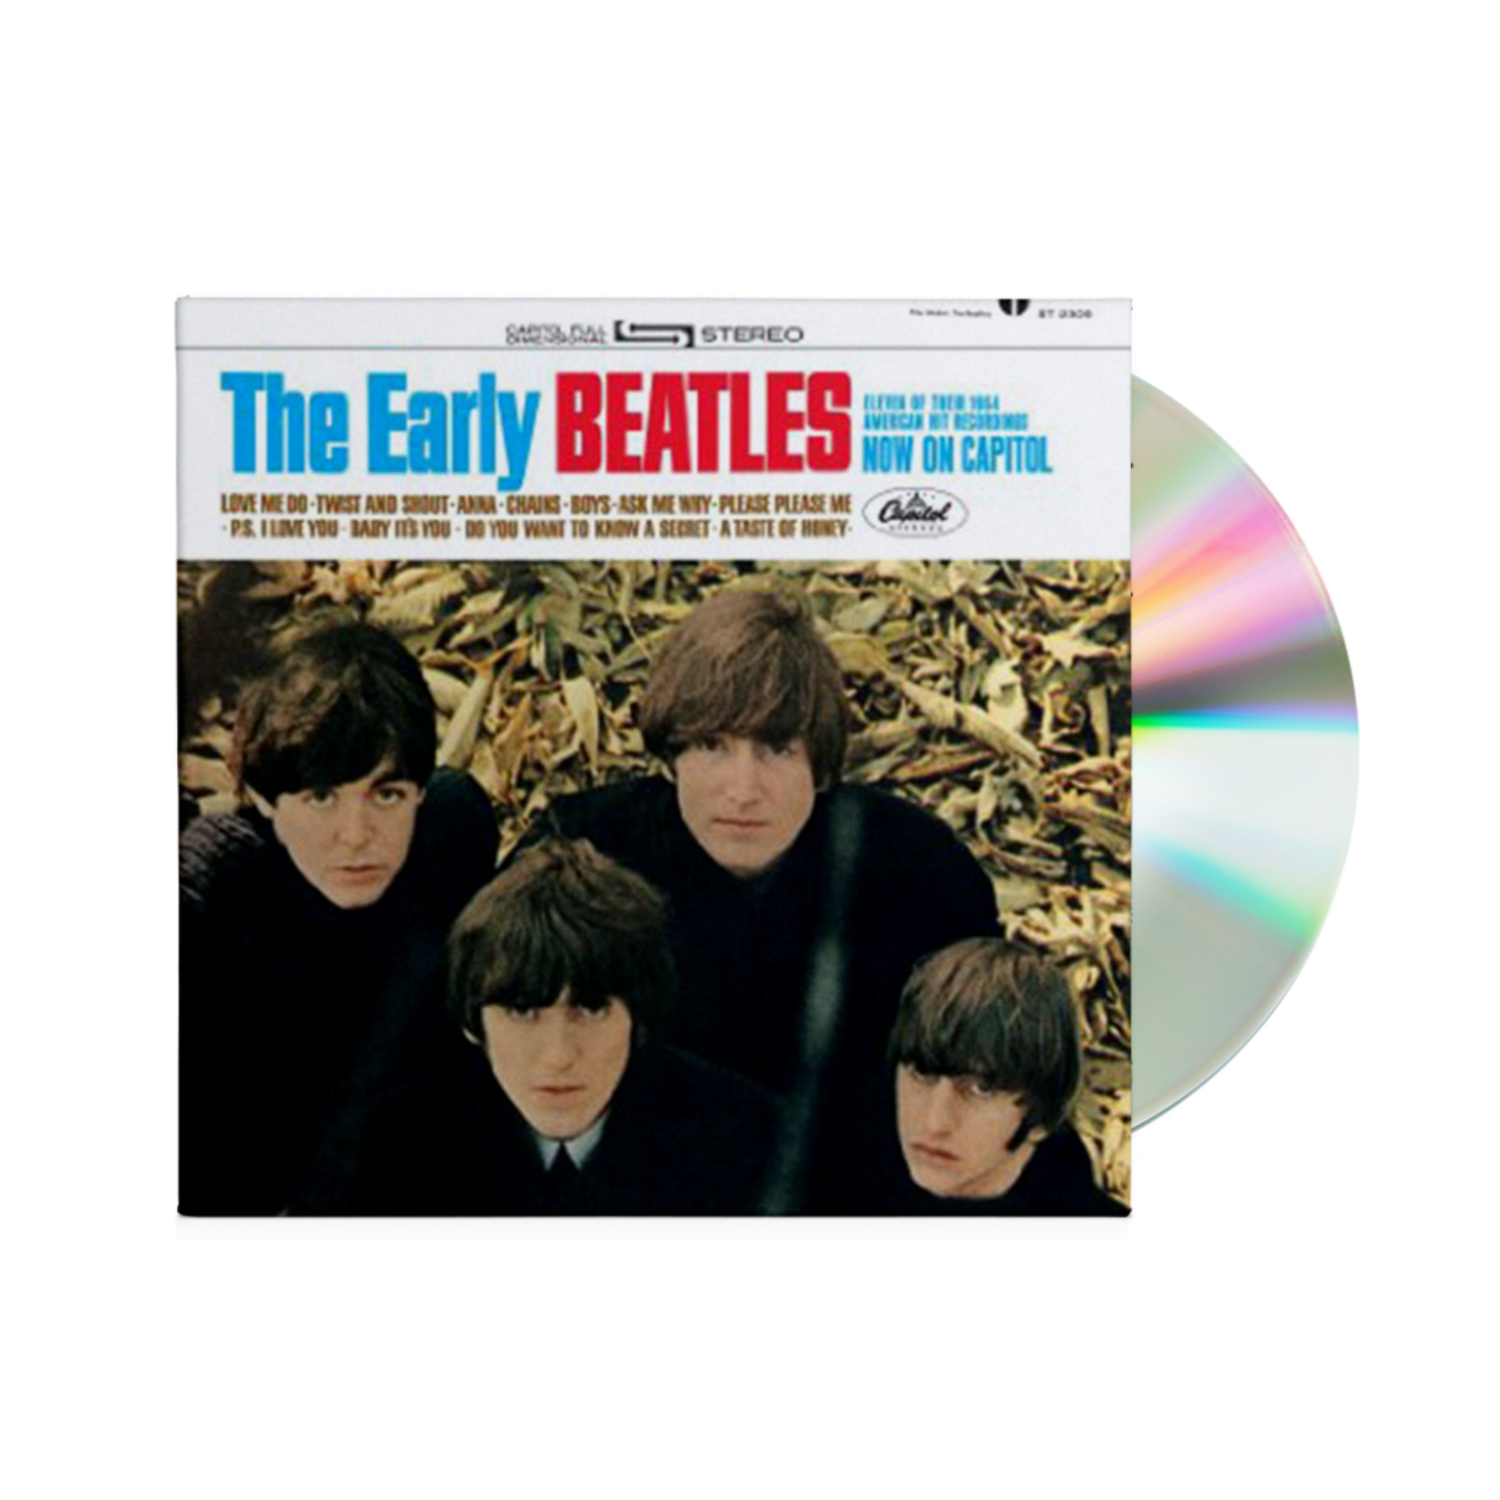 The Early Beatles CD